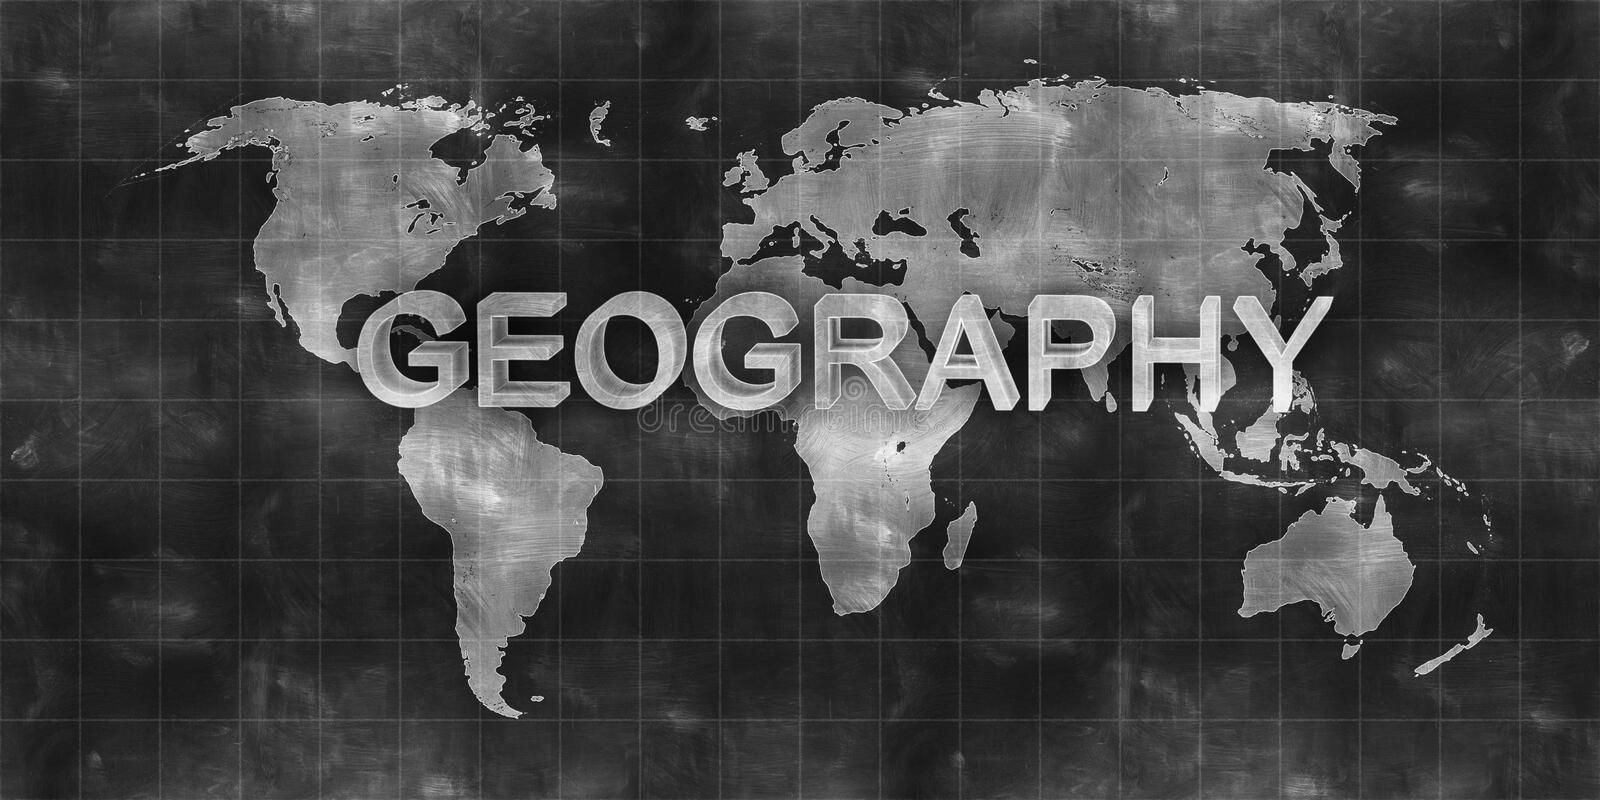 World map geography draw on chalkboard stock illustration download world map geography draw on chalkboard stock illustration illustration of chalkboard grunge gumiabroncs Gallery